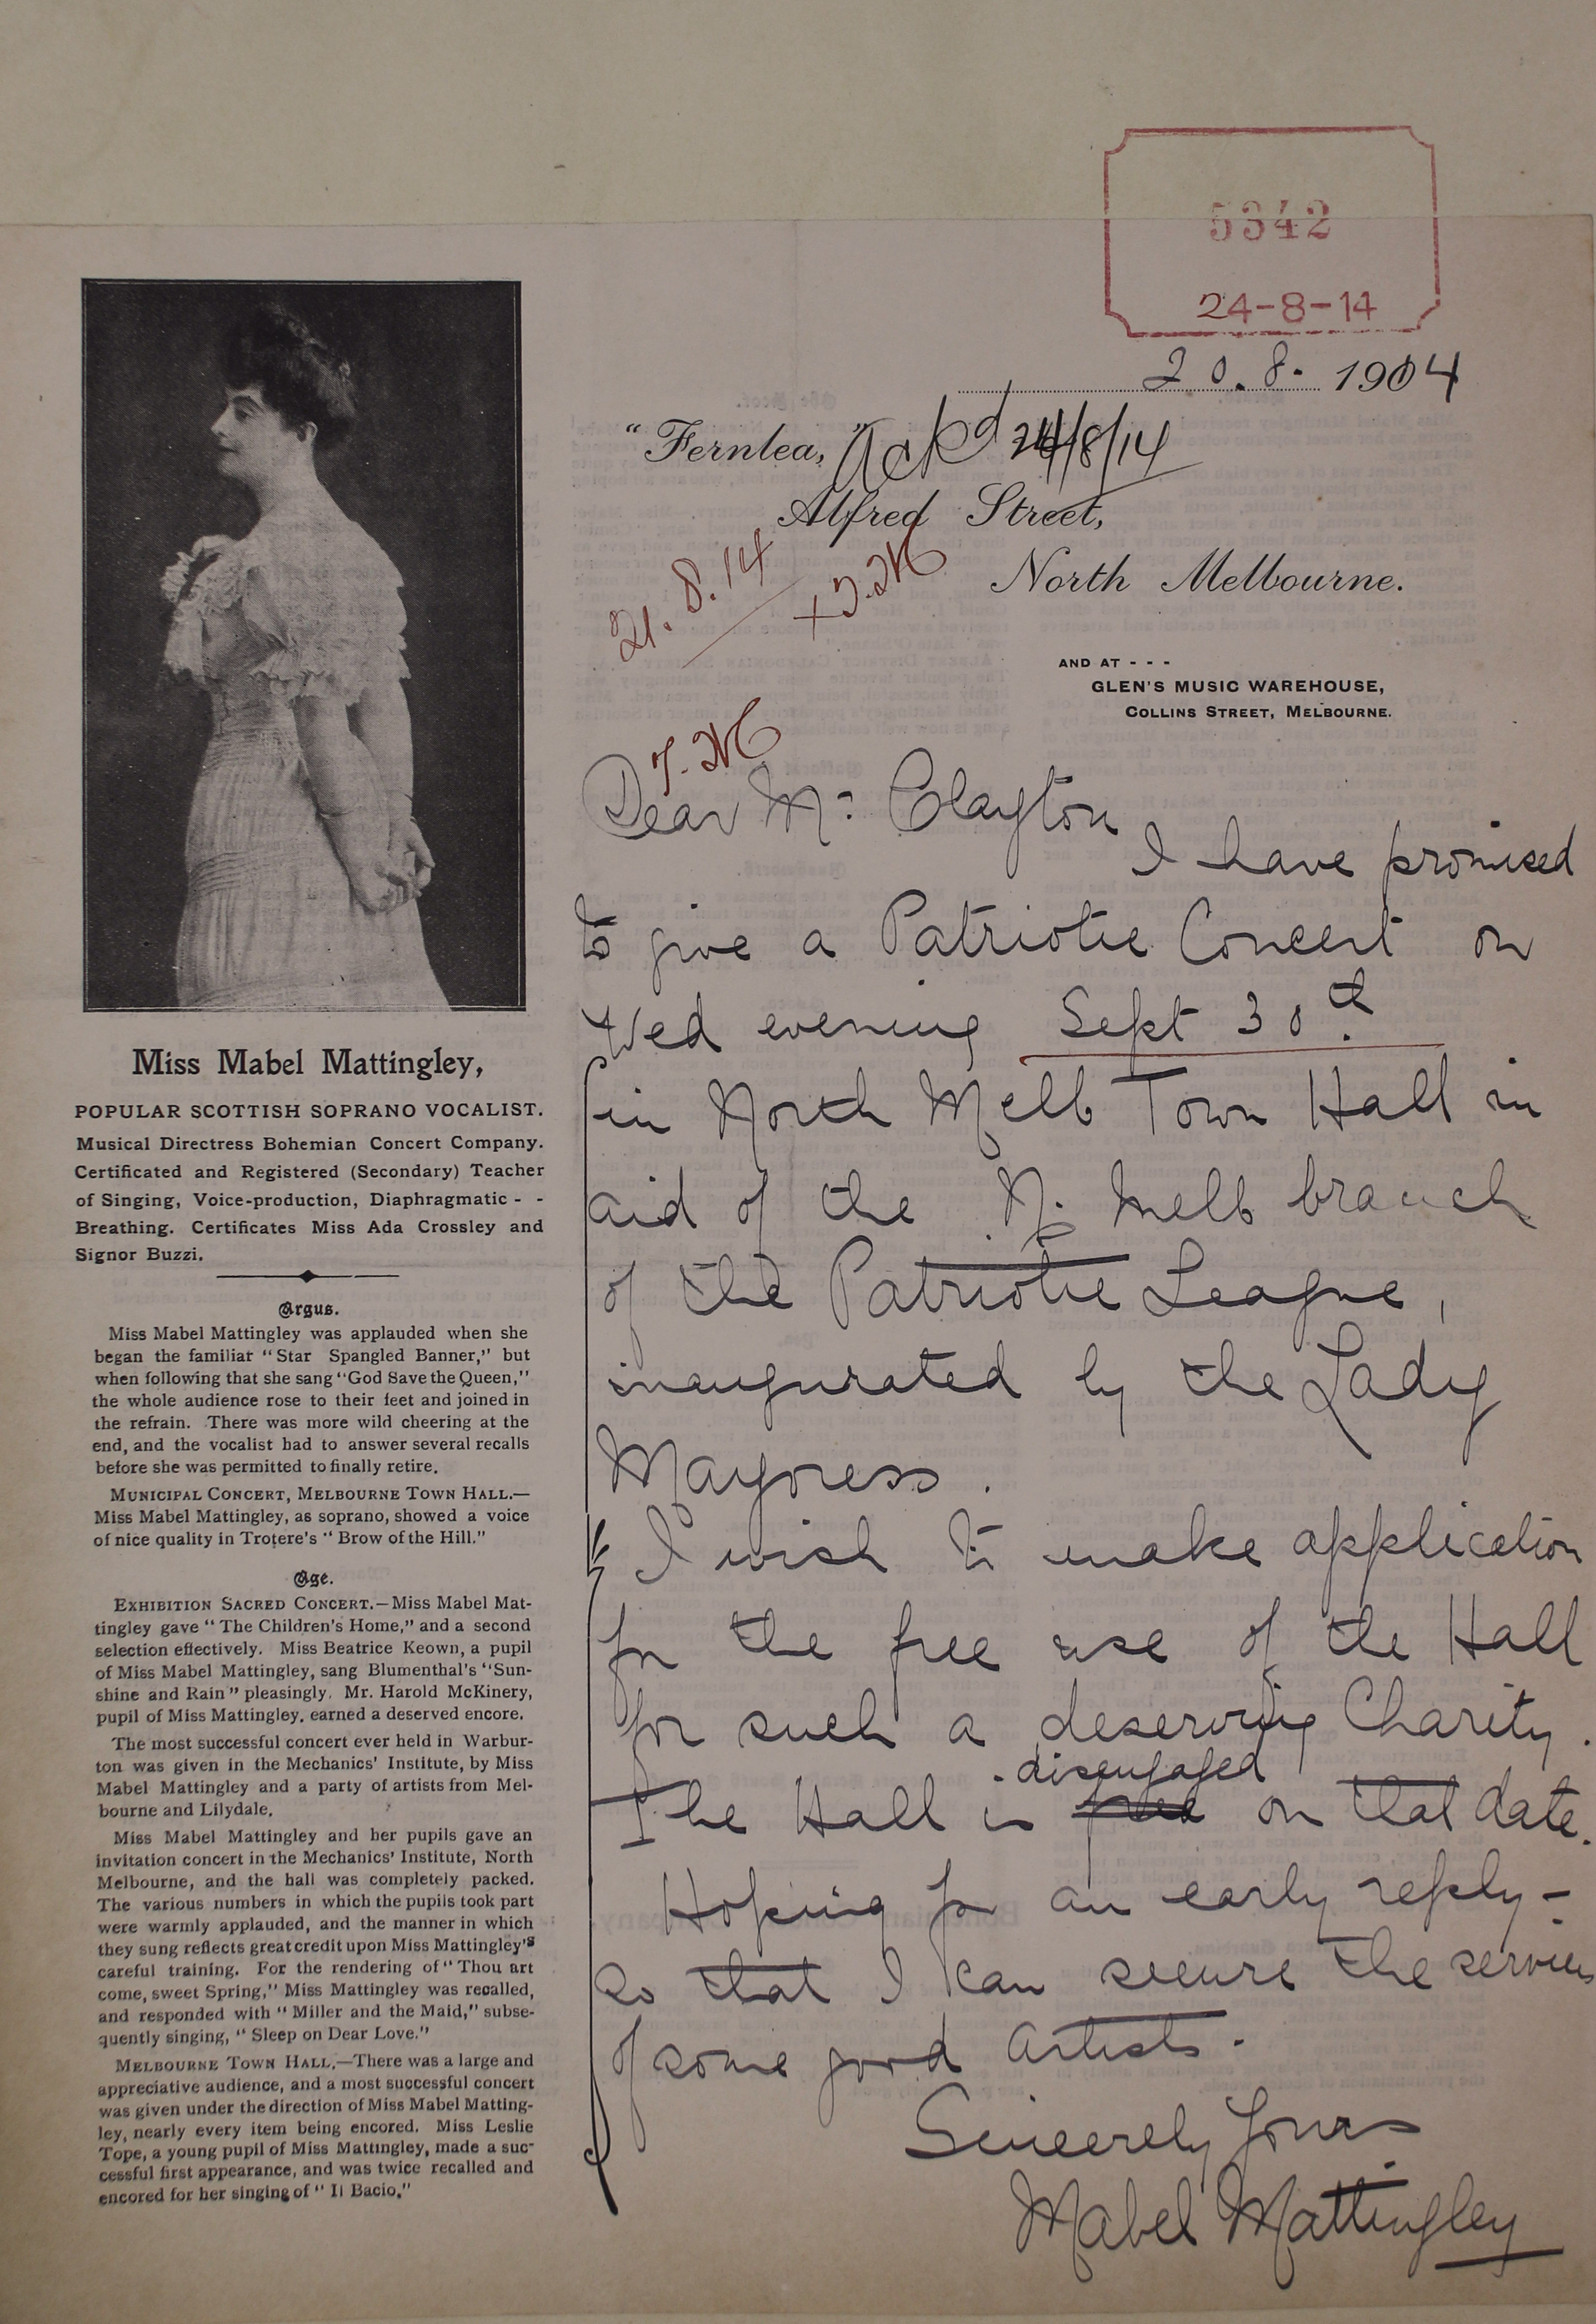 Image of letter regarding a Patriotic Concert featuring Mabel Mattingly.